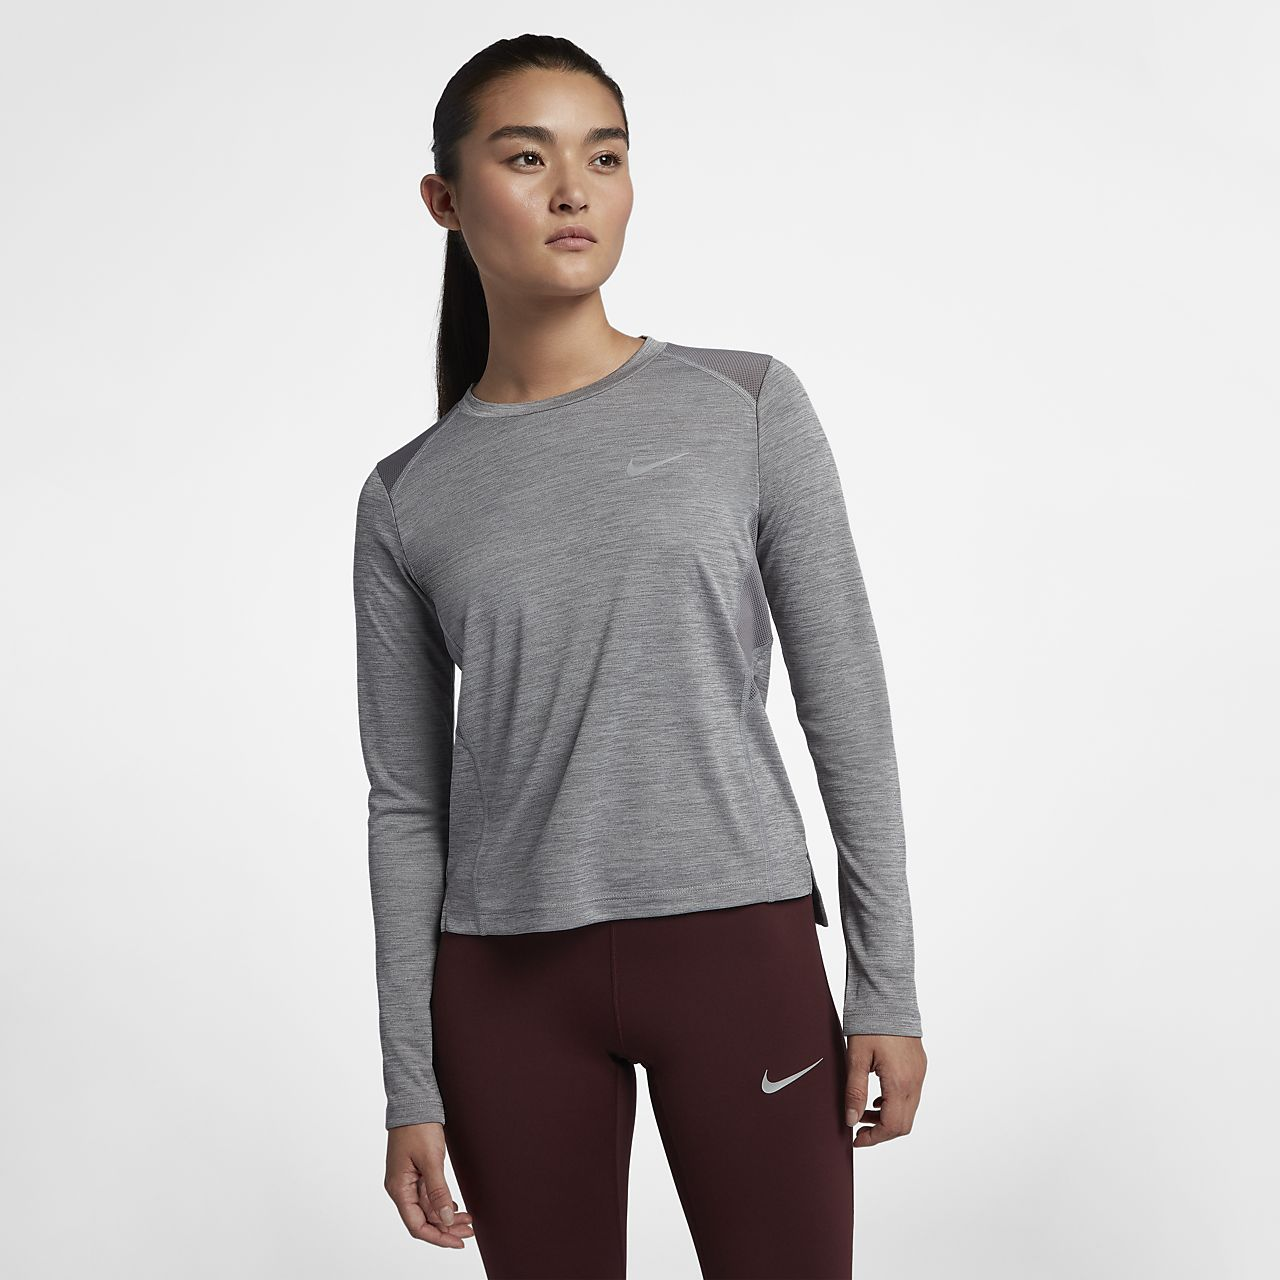 5d702f2d06 Nike Miler Women s Long-Sleeve Top. Nike.com EG